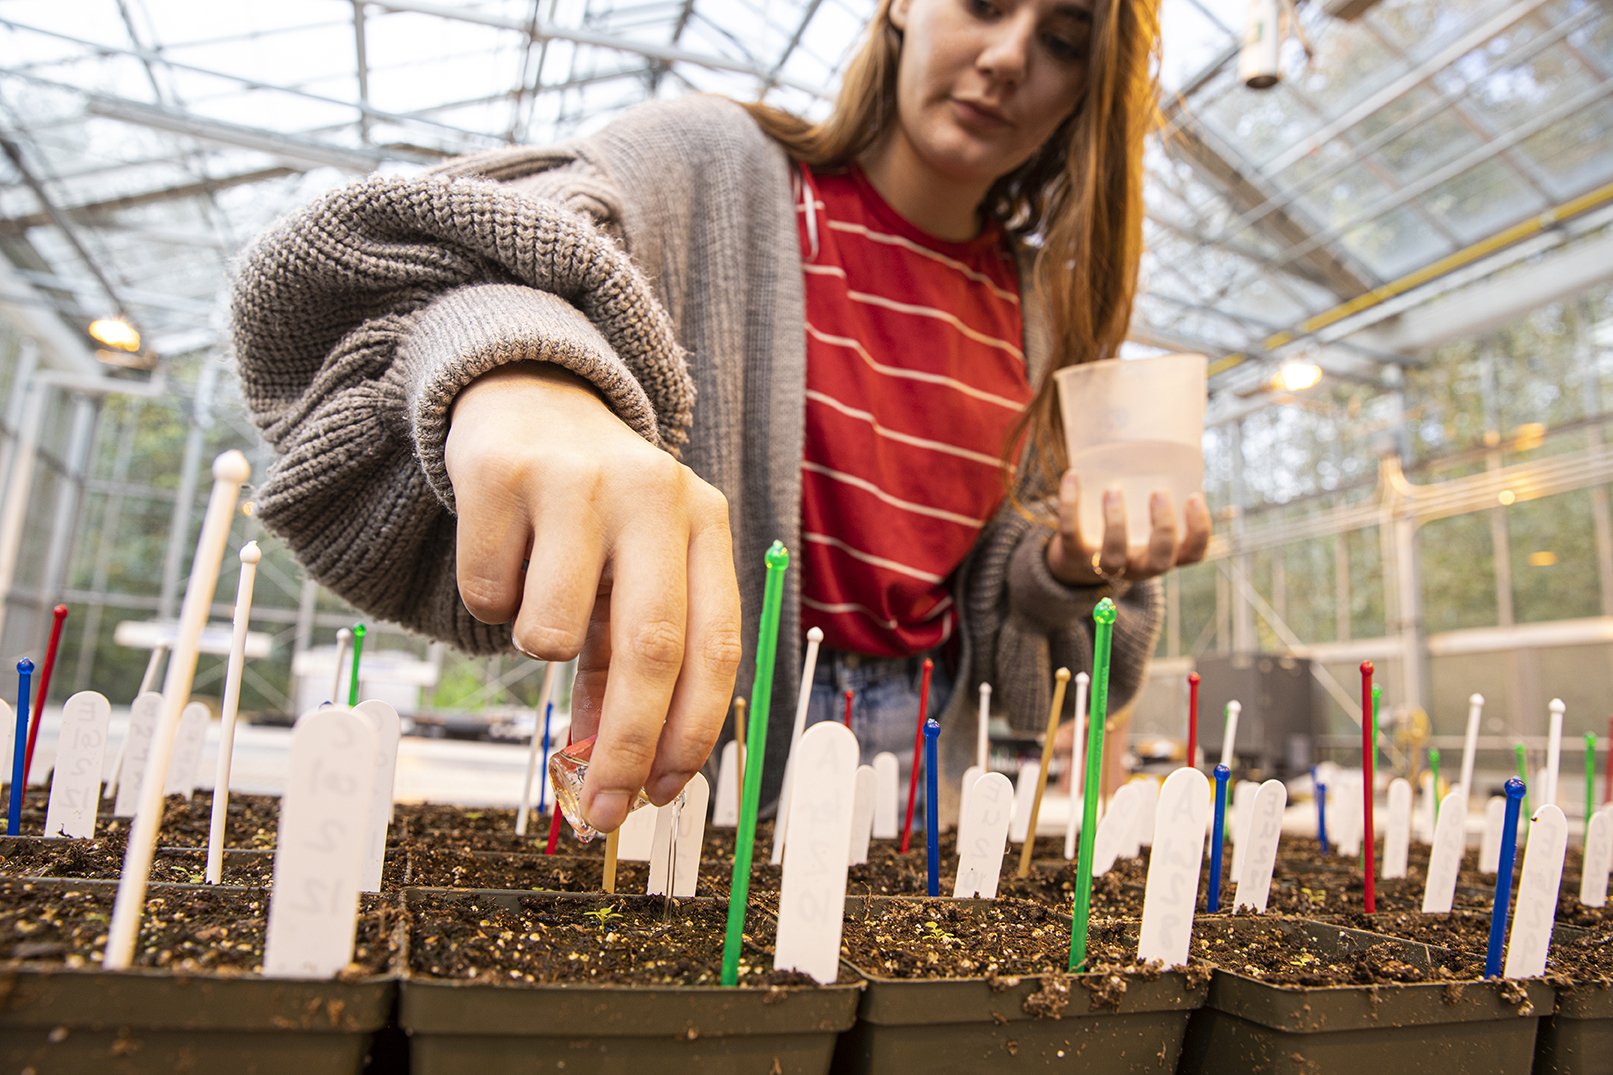 A student in Assistant Prof. Cynthia Chang's class waters seedlings in the  Sarah Simonds Green Conservatory at UW Bothell for an investigative biology research project. (Photo by Mark Stone)